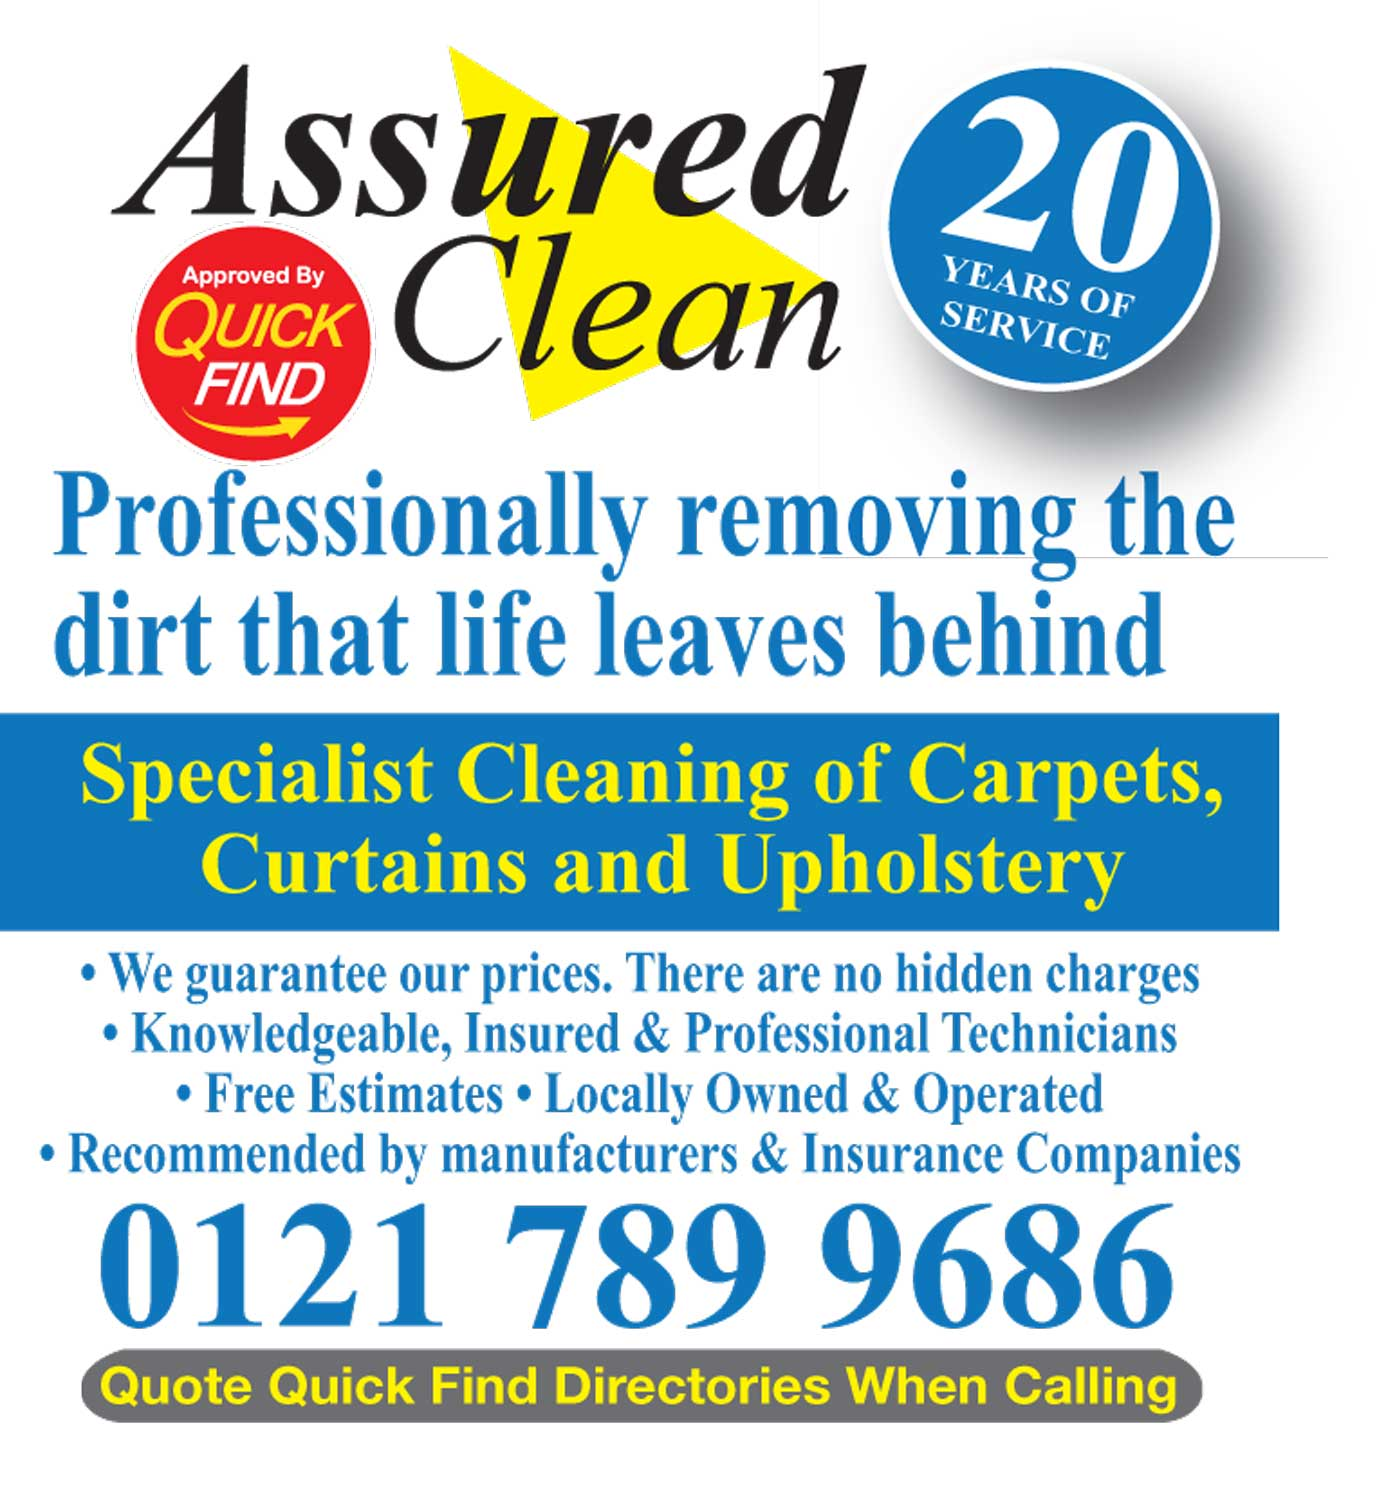 Assured Clean